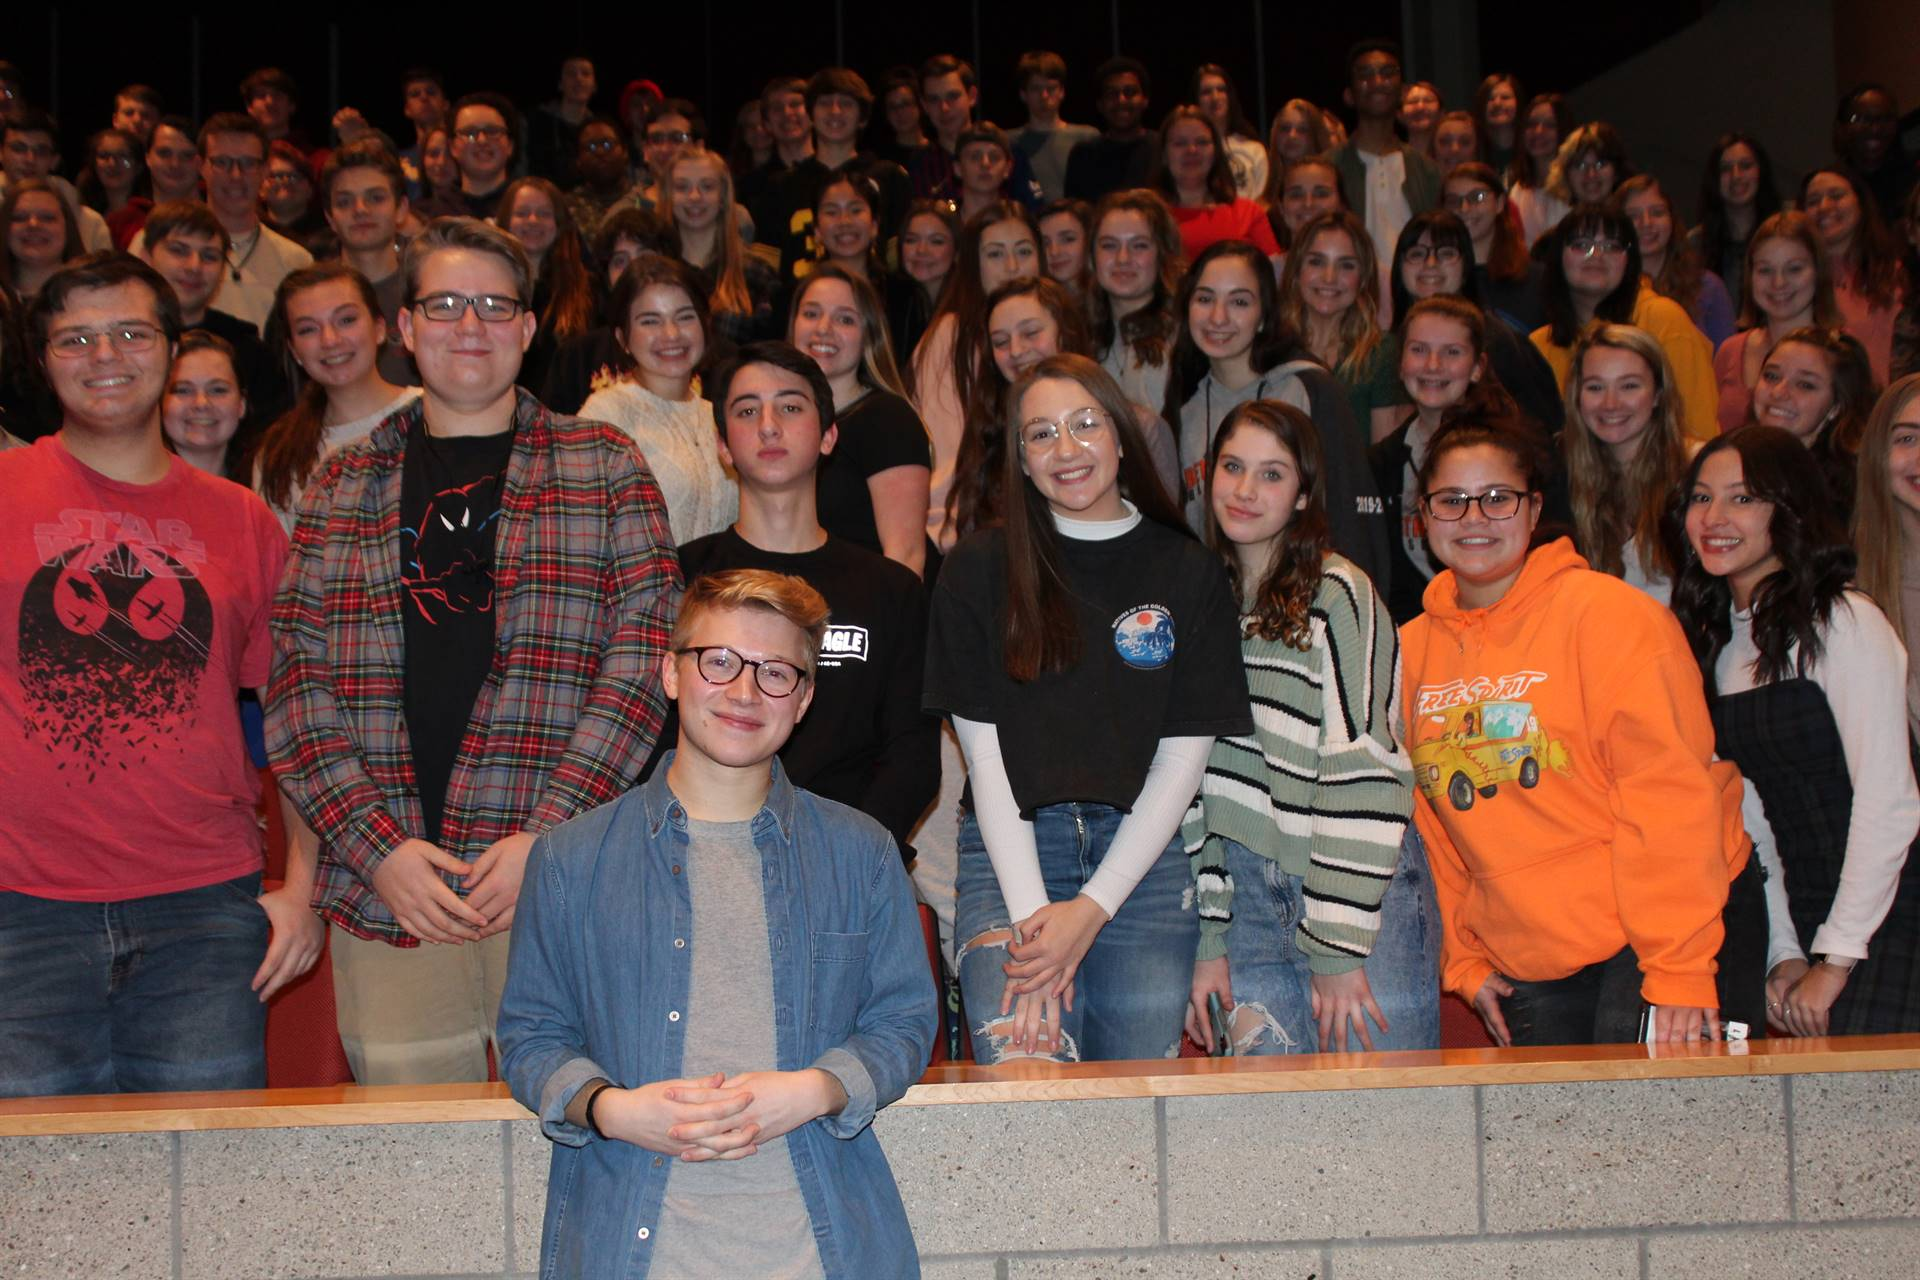 High School Musical: The Musical: The Series star Joe Serafini with BPHS music students